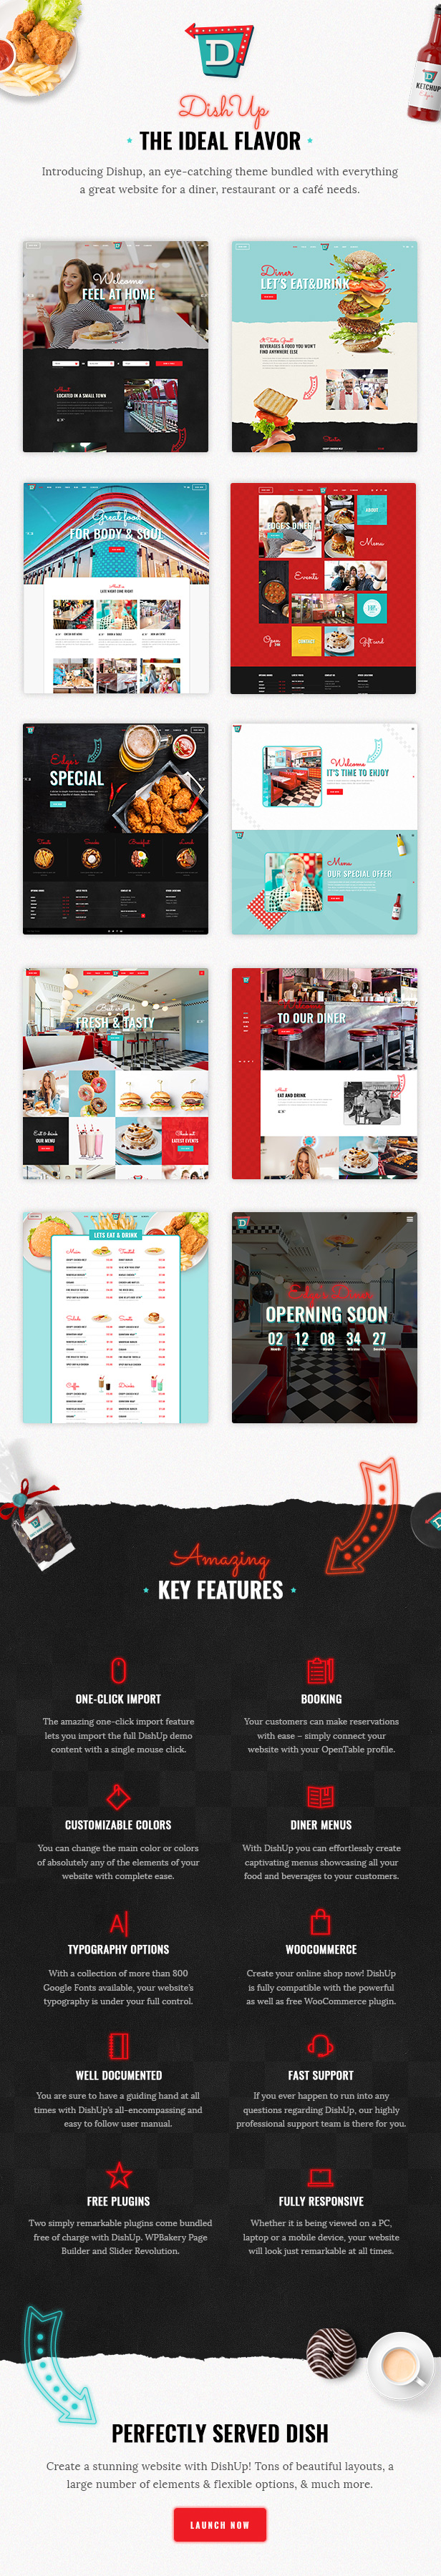 DishUp - Restaurant Theme - 1